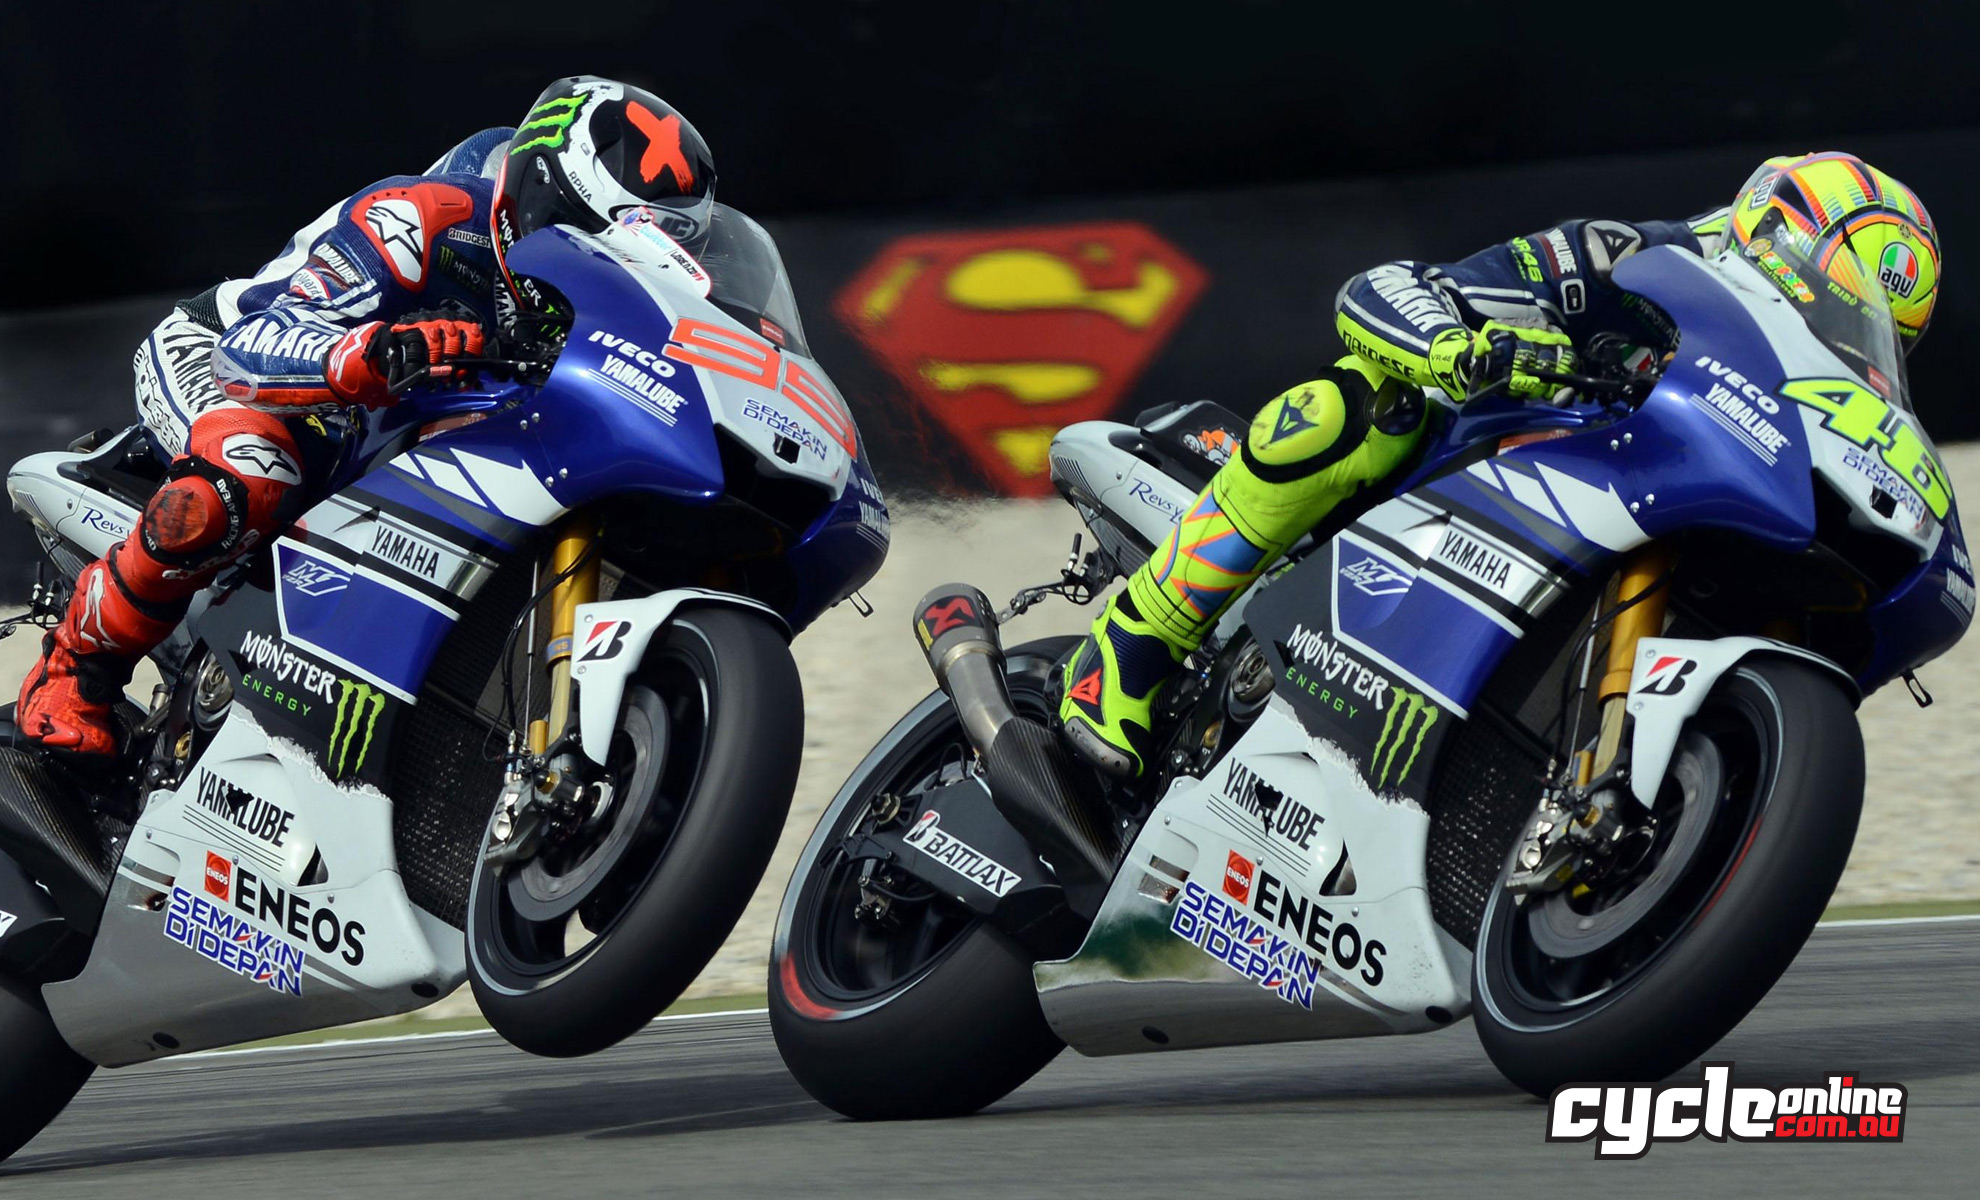 Wednesday wallpaper valentino rossi and jorge lorenzo wednesday wallpaper valentino rossi and jorge lorenzo cycleonline voltagebd Image collections